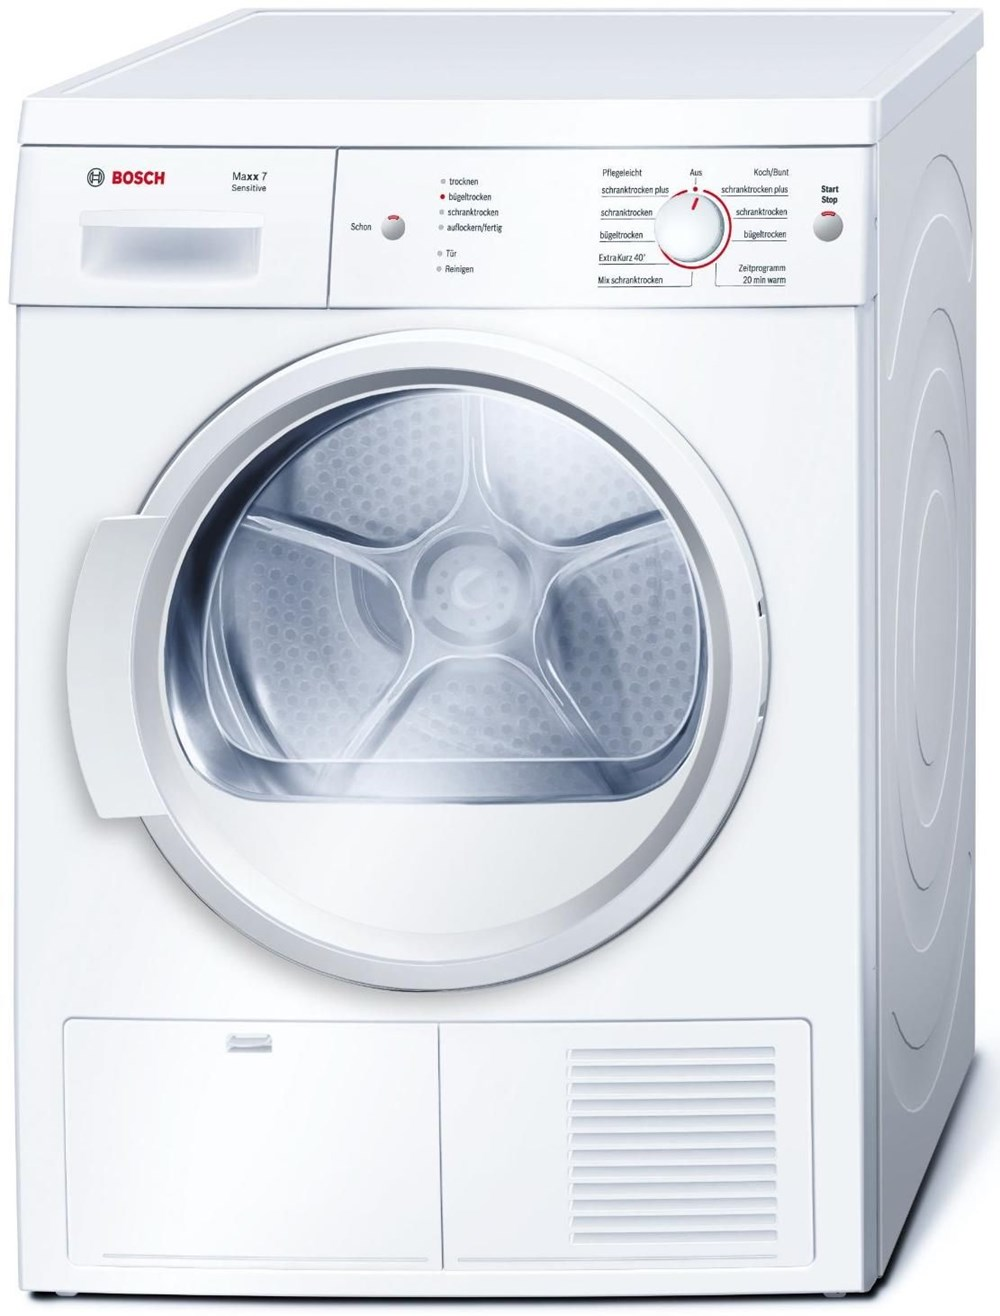 bosch seche linge maxx 7 sensitive 28 images d bosch maxx 8 wtb86300gb condenser tumble. Black Bedroom Furniture Sets. Home Design Ideas